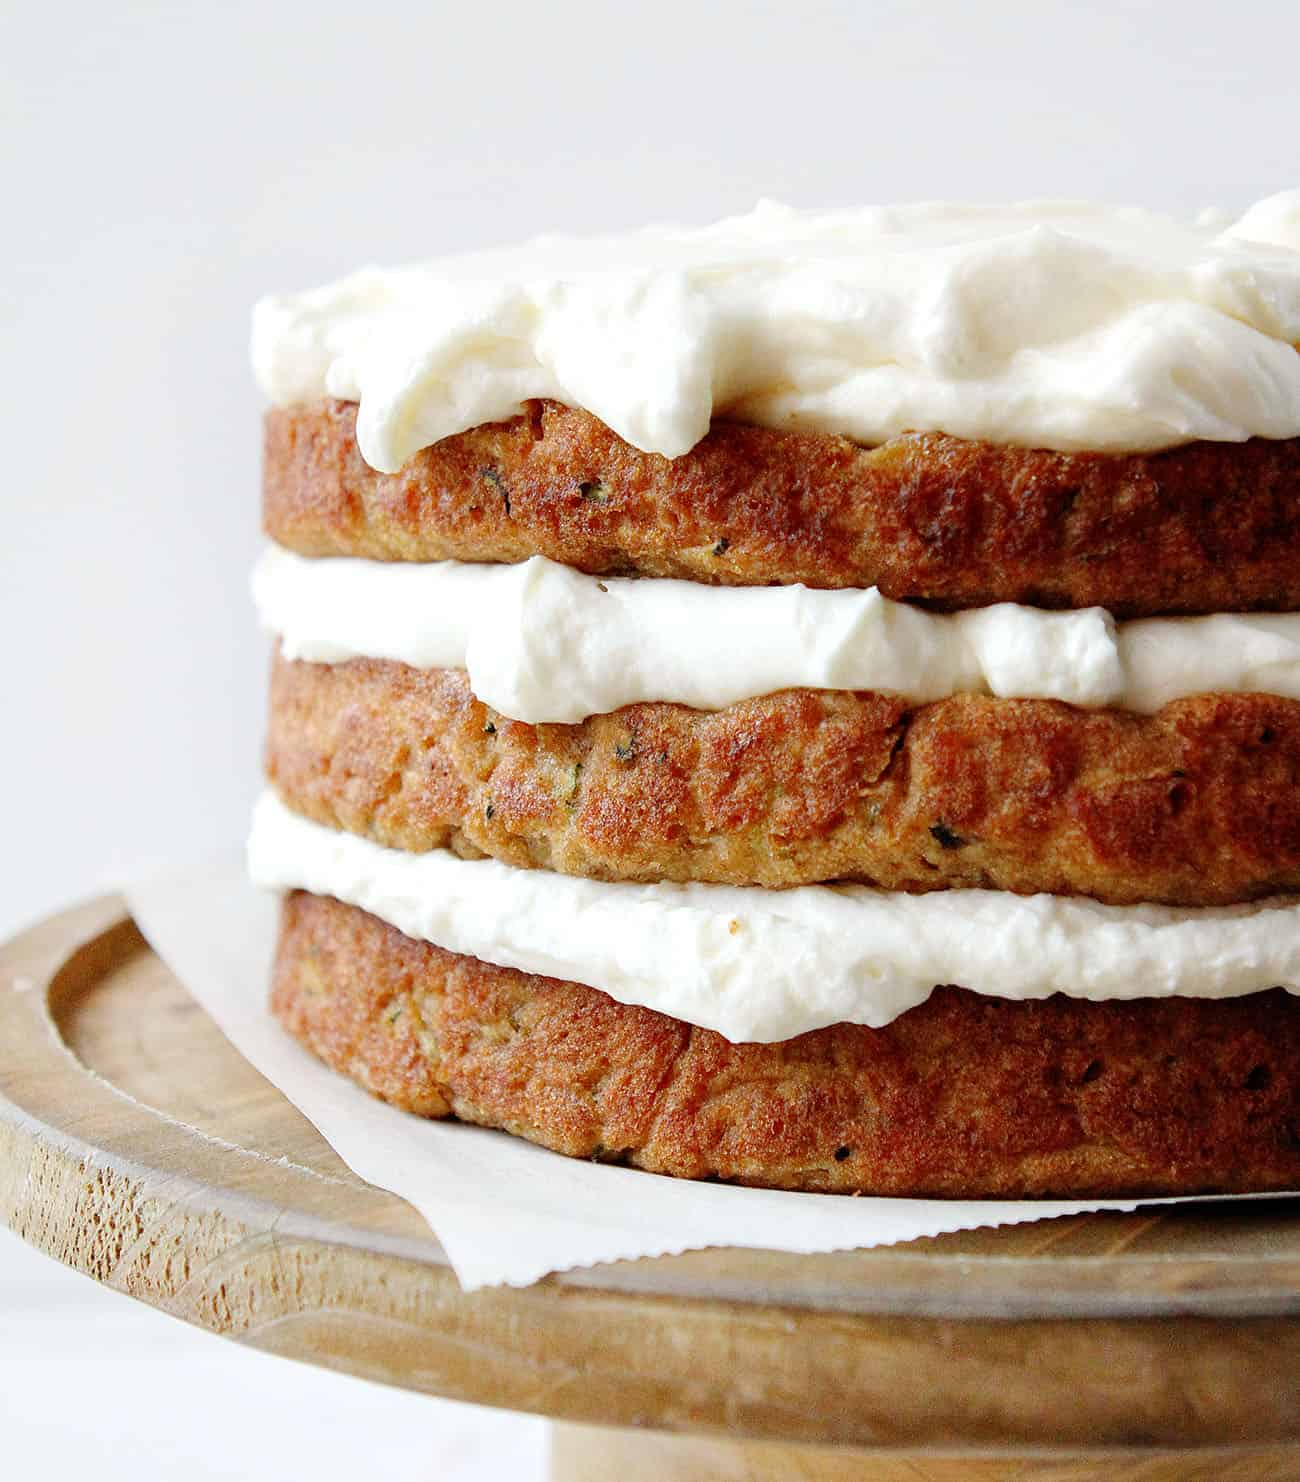 Edges of Banana Zucchini Cake with Whipped Cream Cheese Frosting